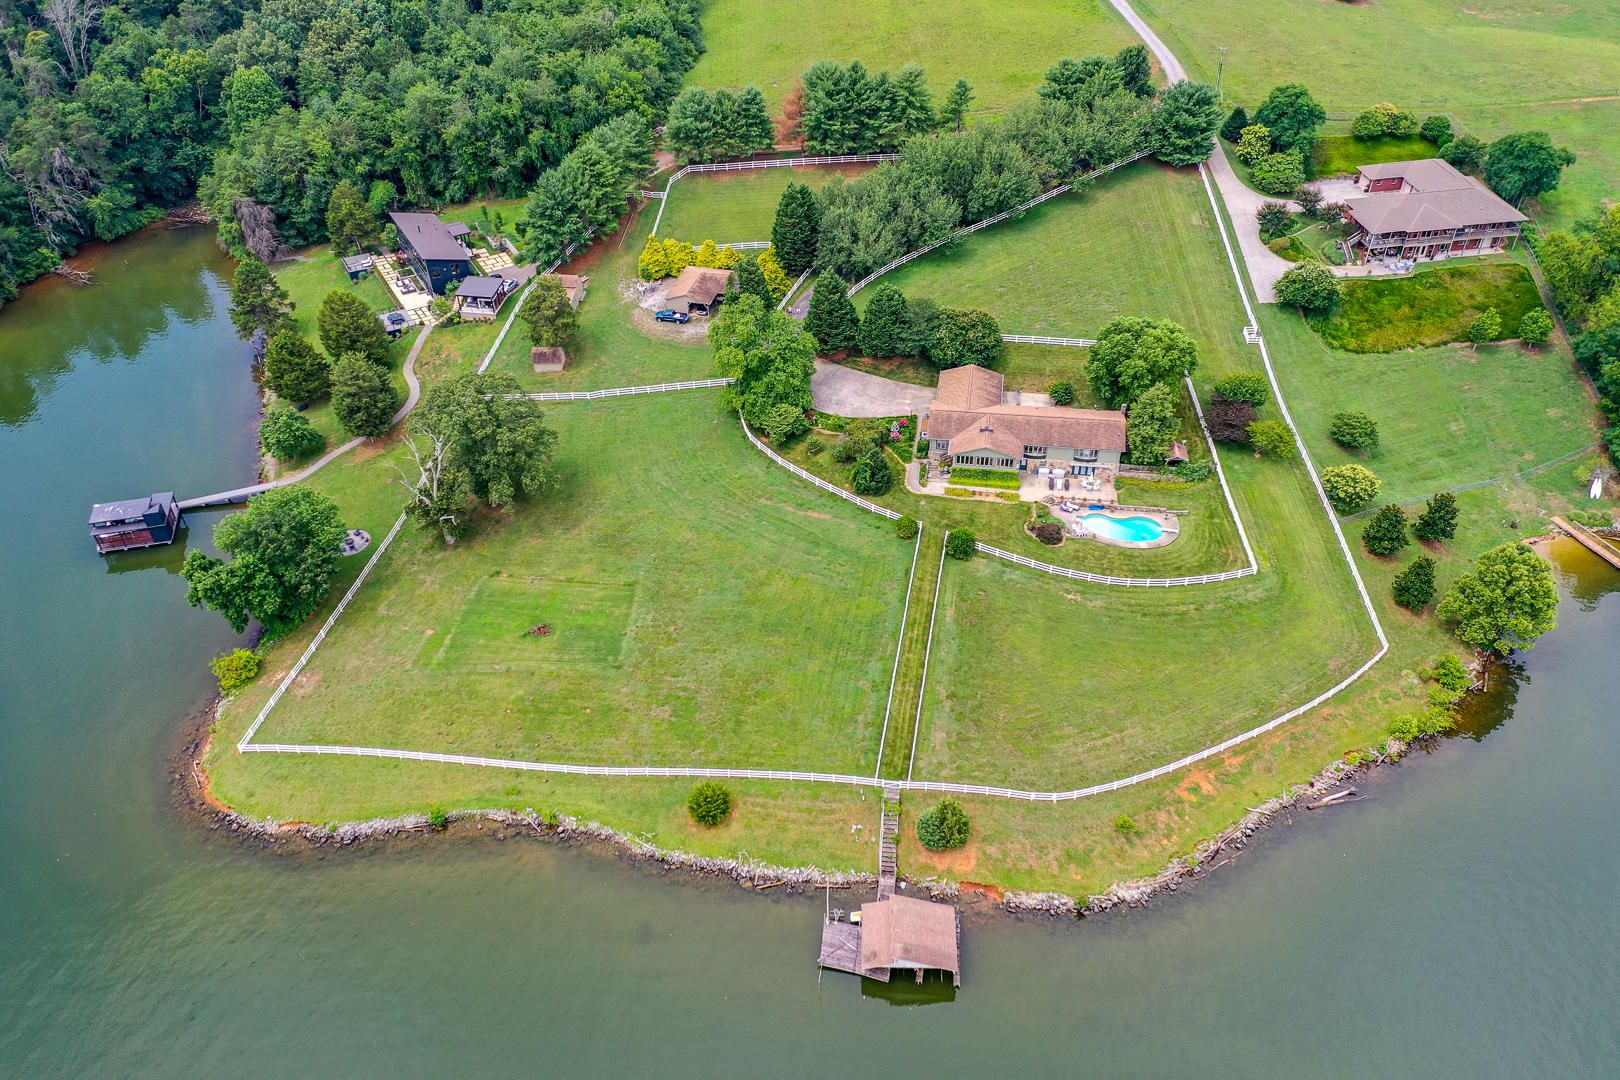 Aerial view of property from the lake